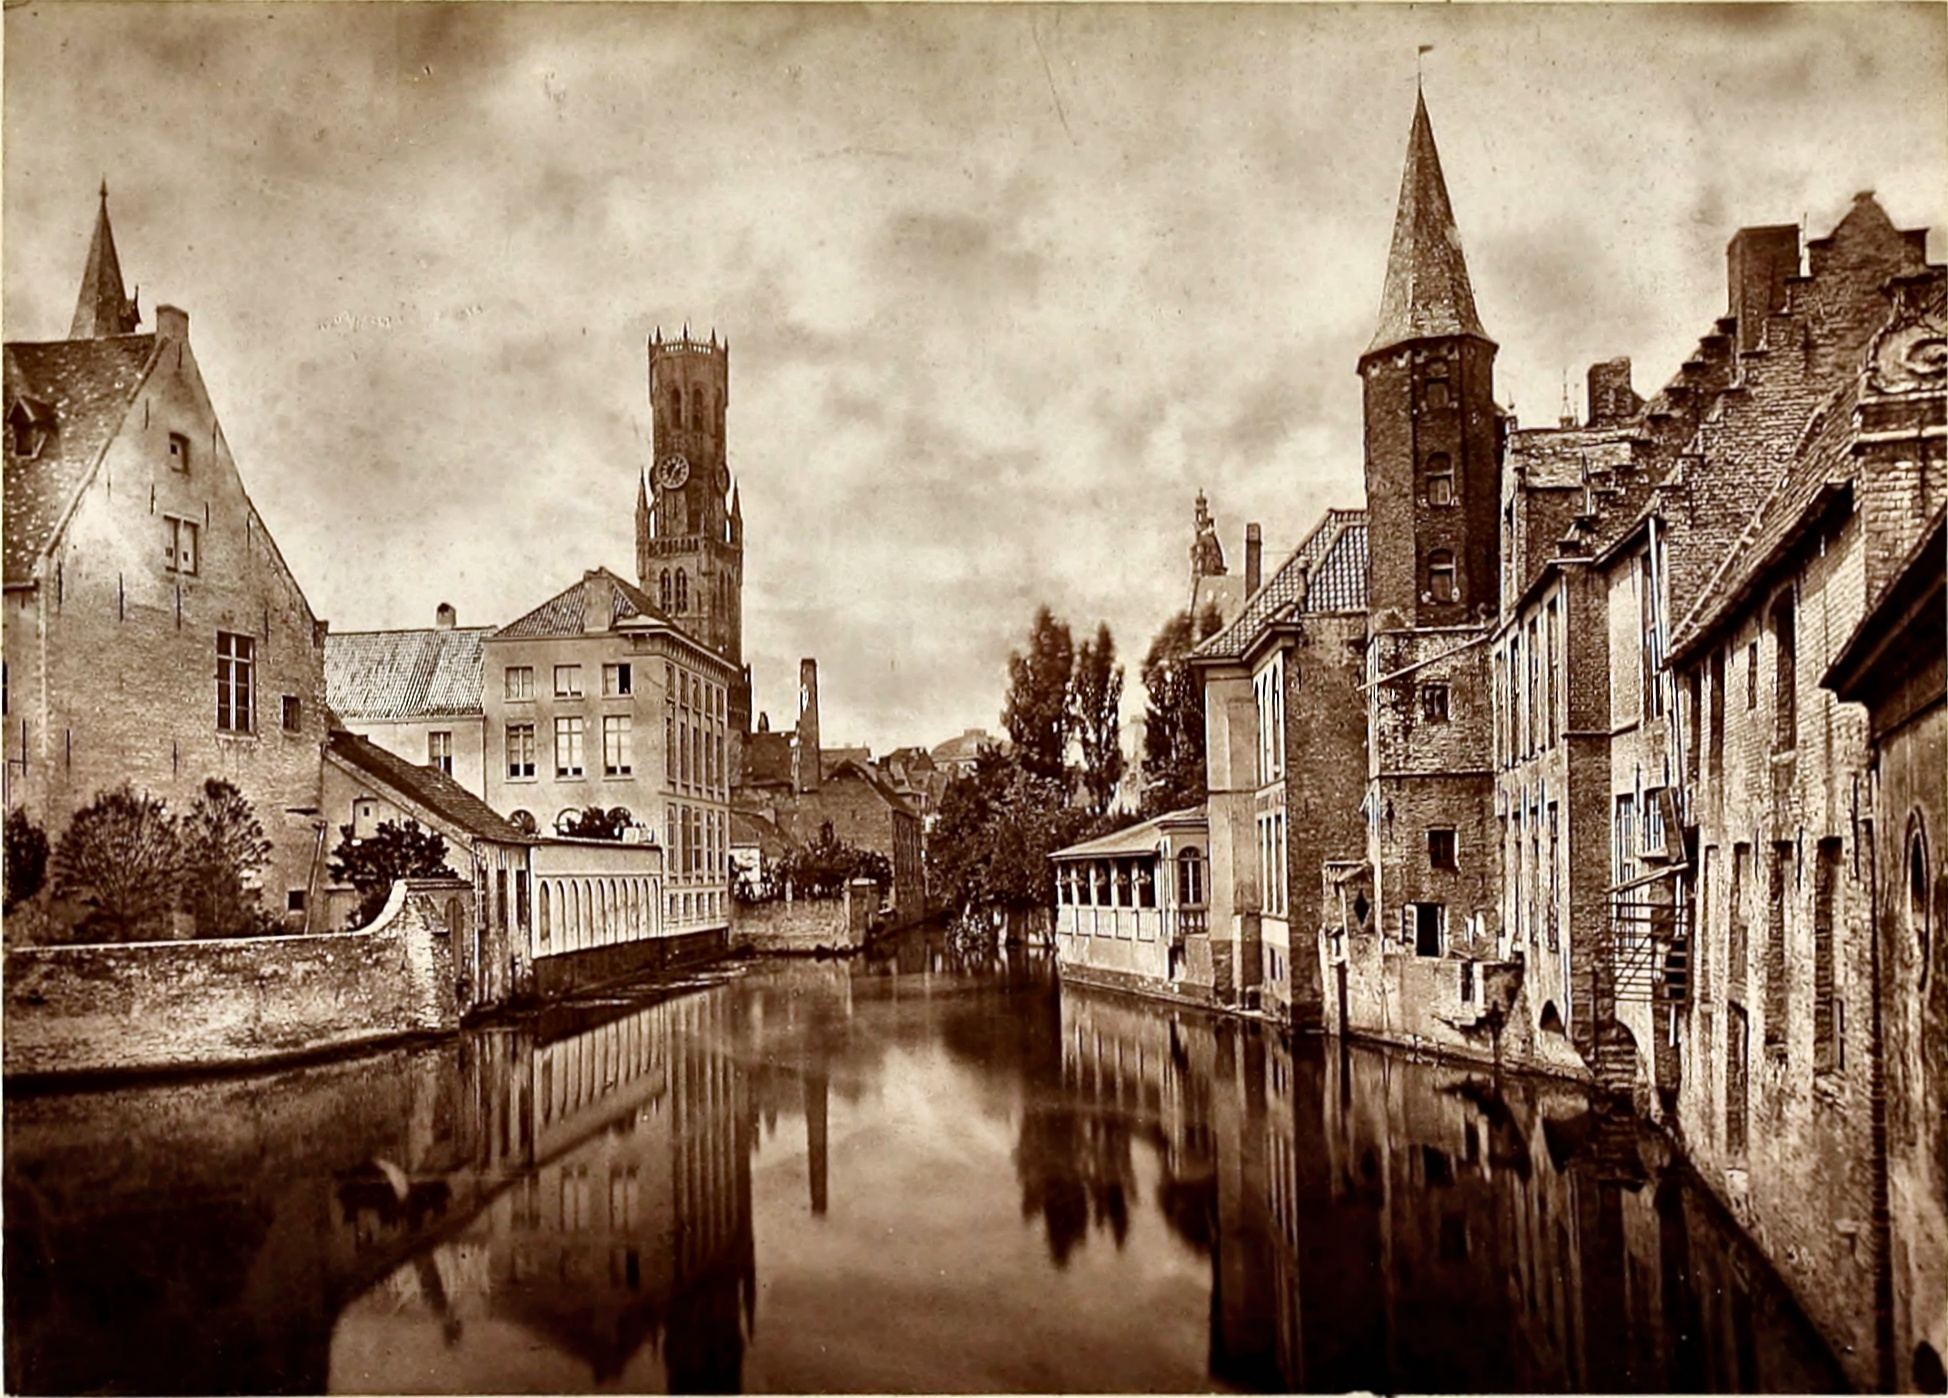 The Belfry at Bruges, Belgium about 1875 by Stephen Thompson